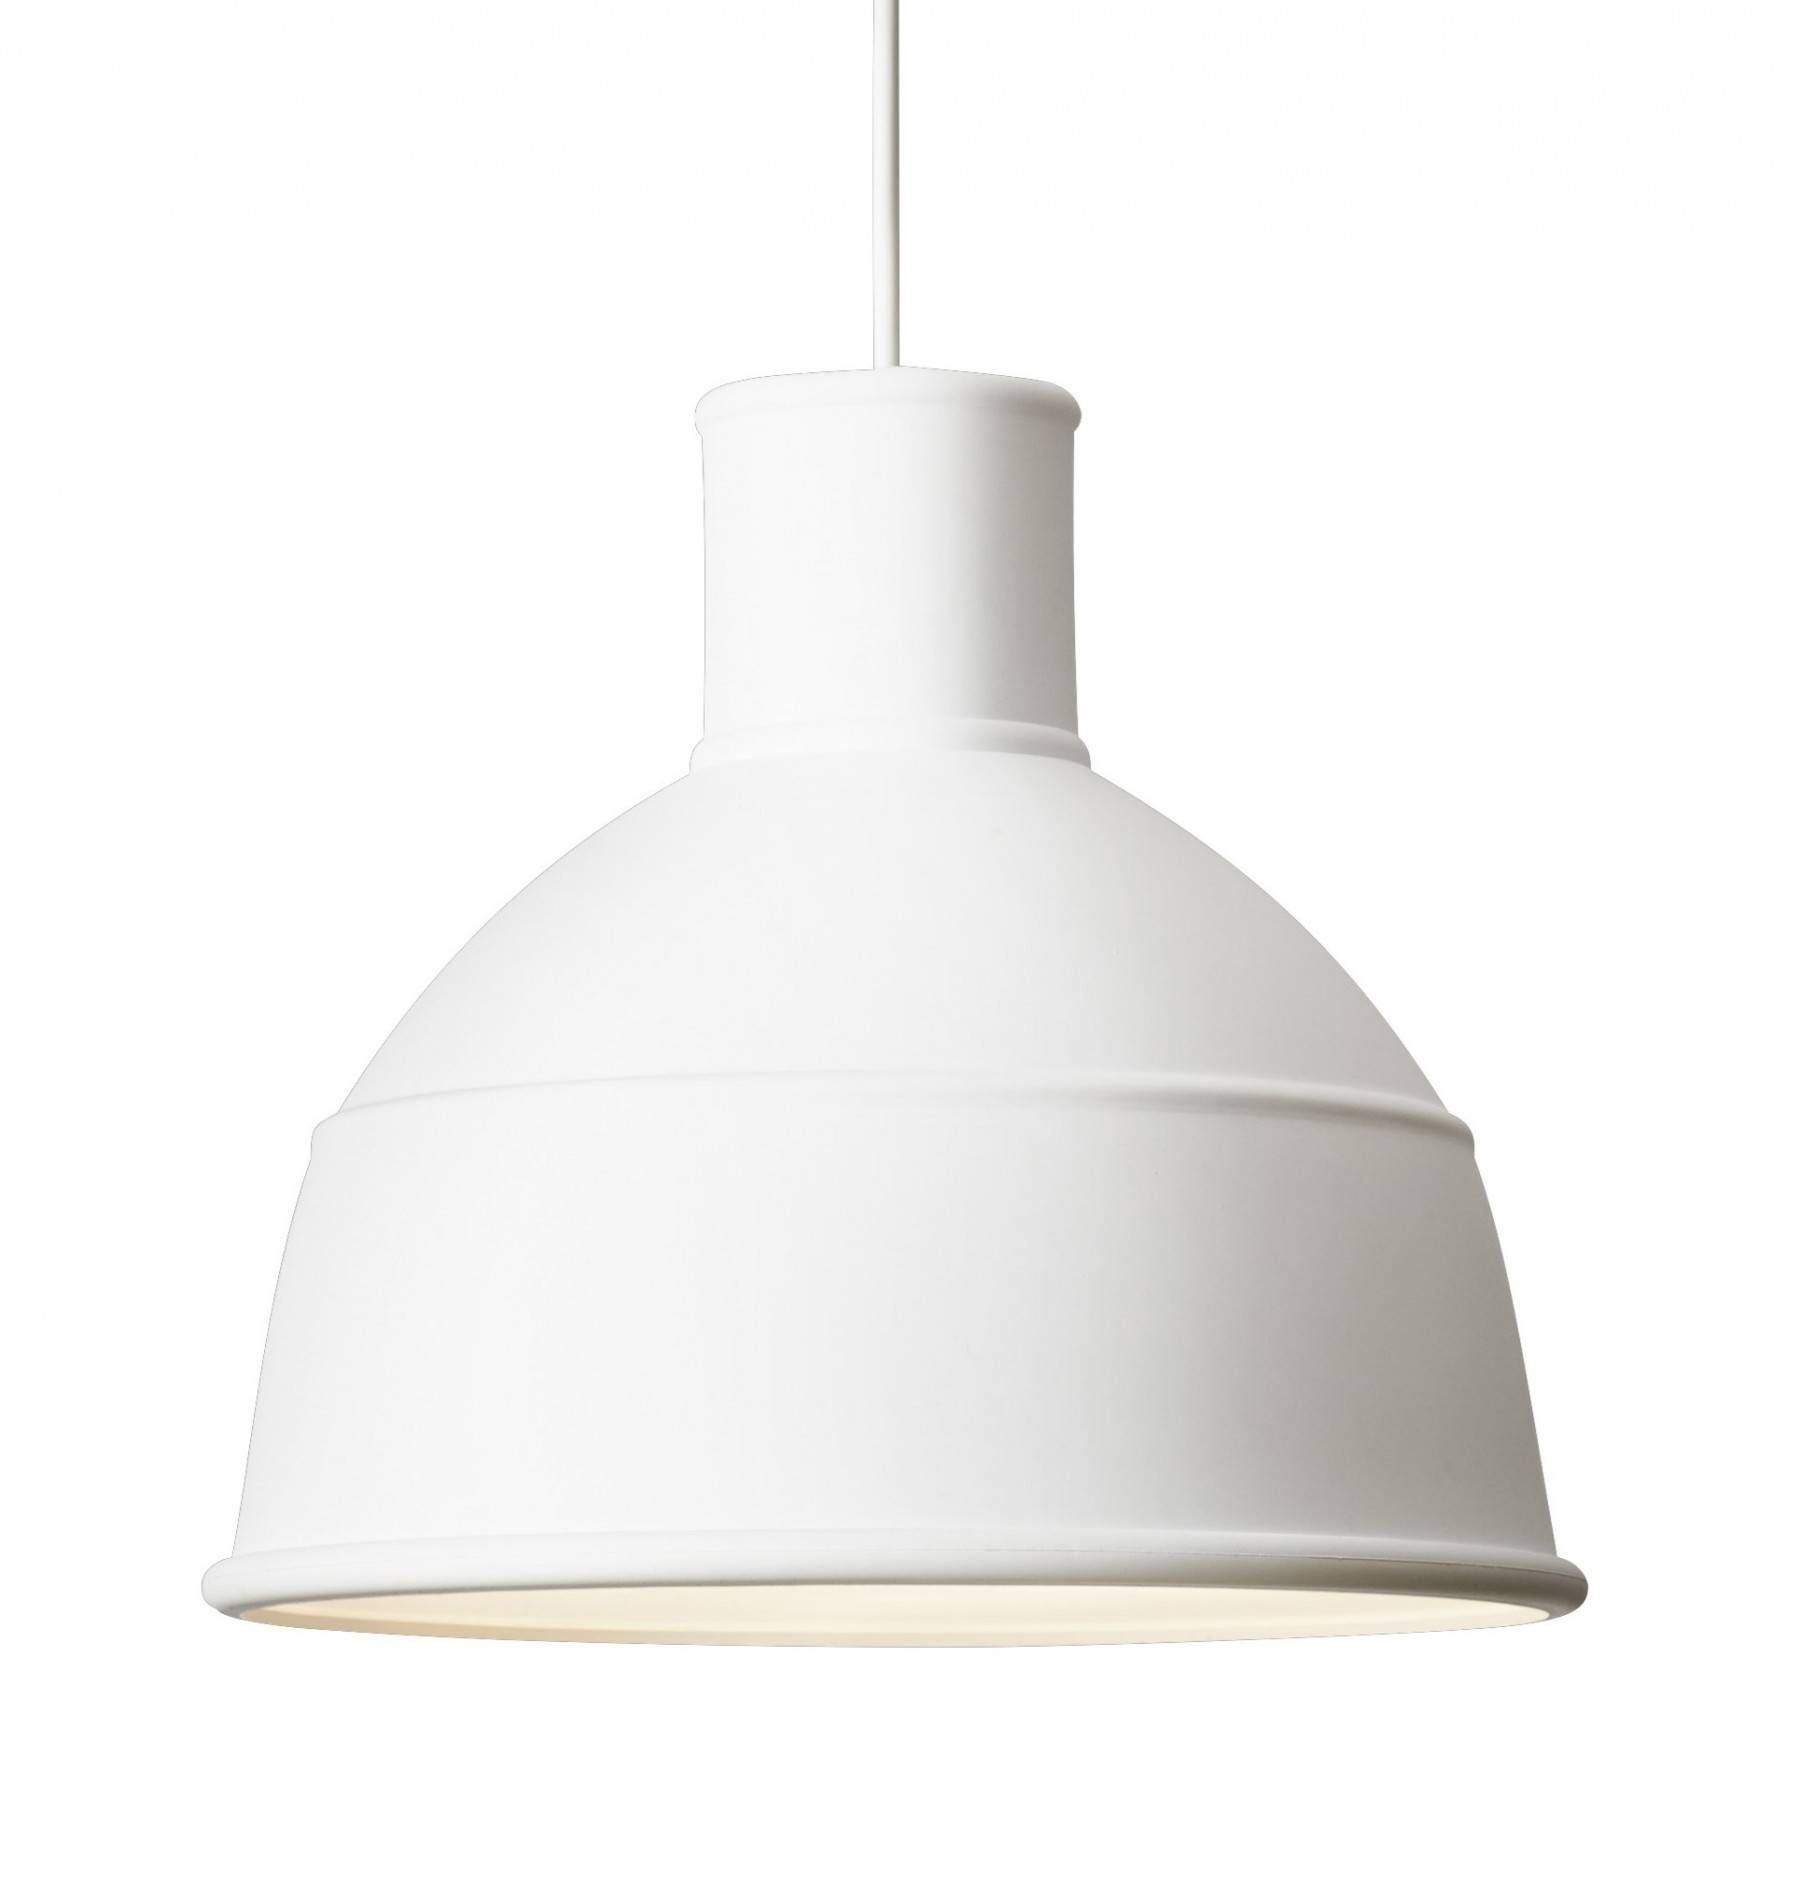 Muuto unfold pendant lamp gr shop canada unfold pendant lamp 1 mozeypictures Gallery